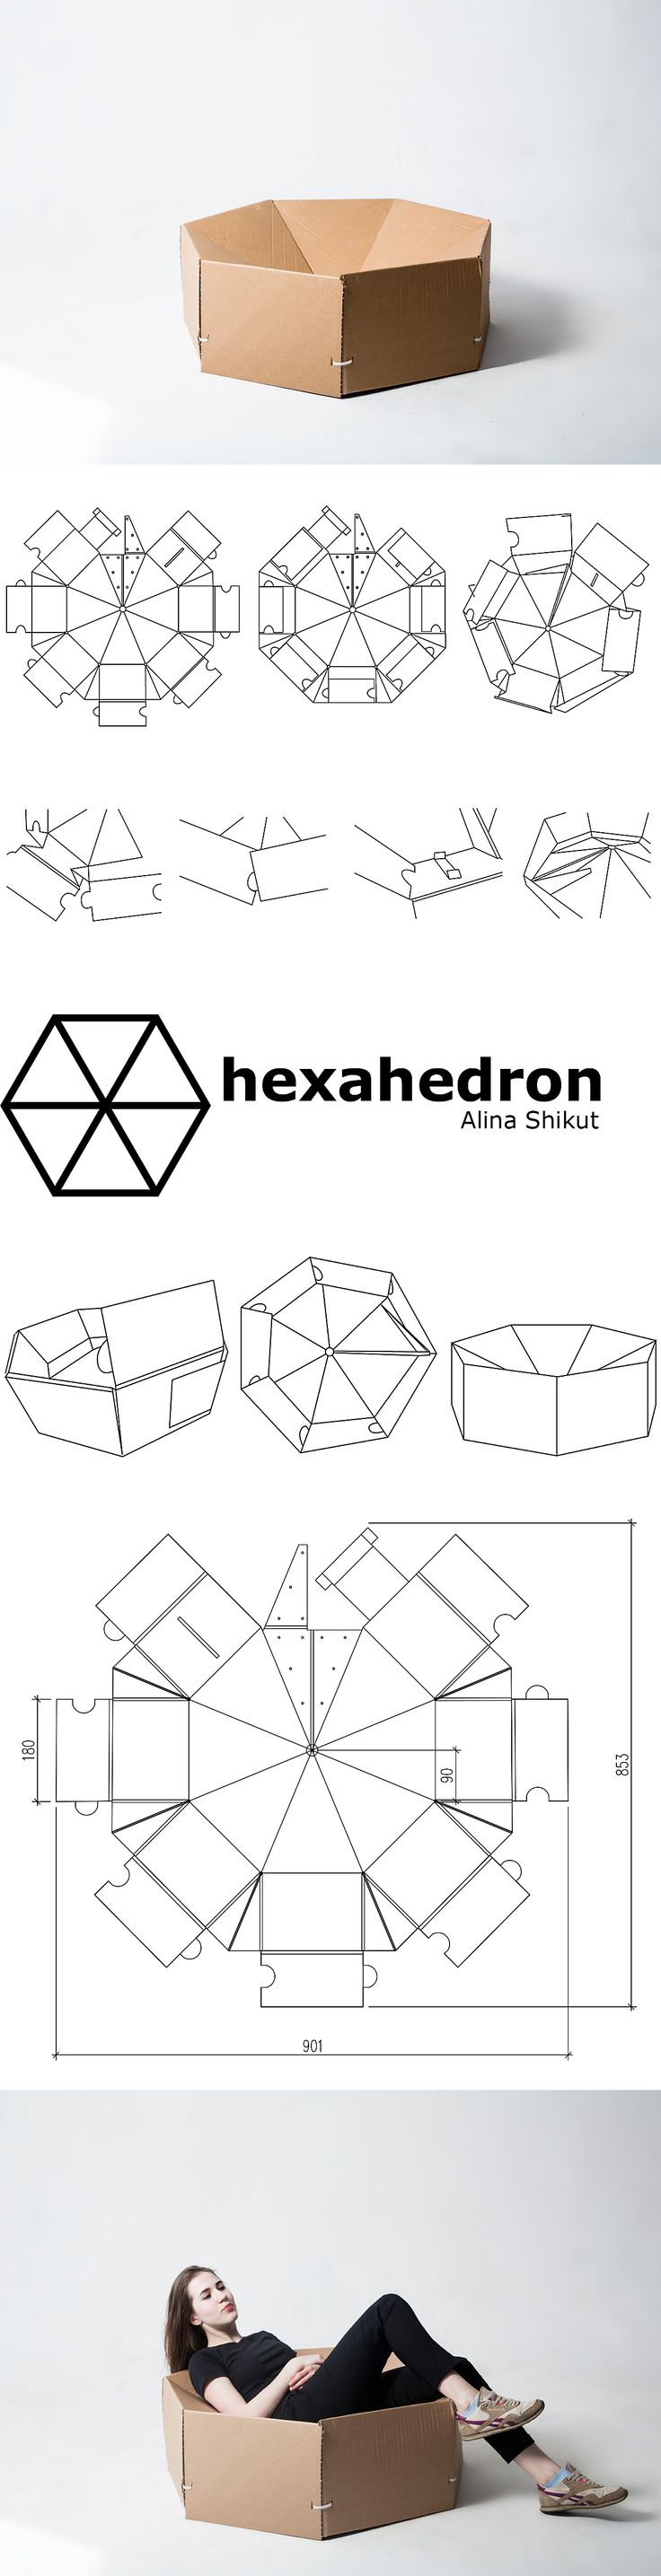 Comfortable cardboard chair designs - Cardboard Chair Hexahedron By Alina Shikut Made With Milling Machine Curator Artpolitika Hse